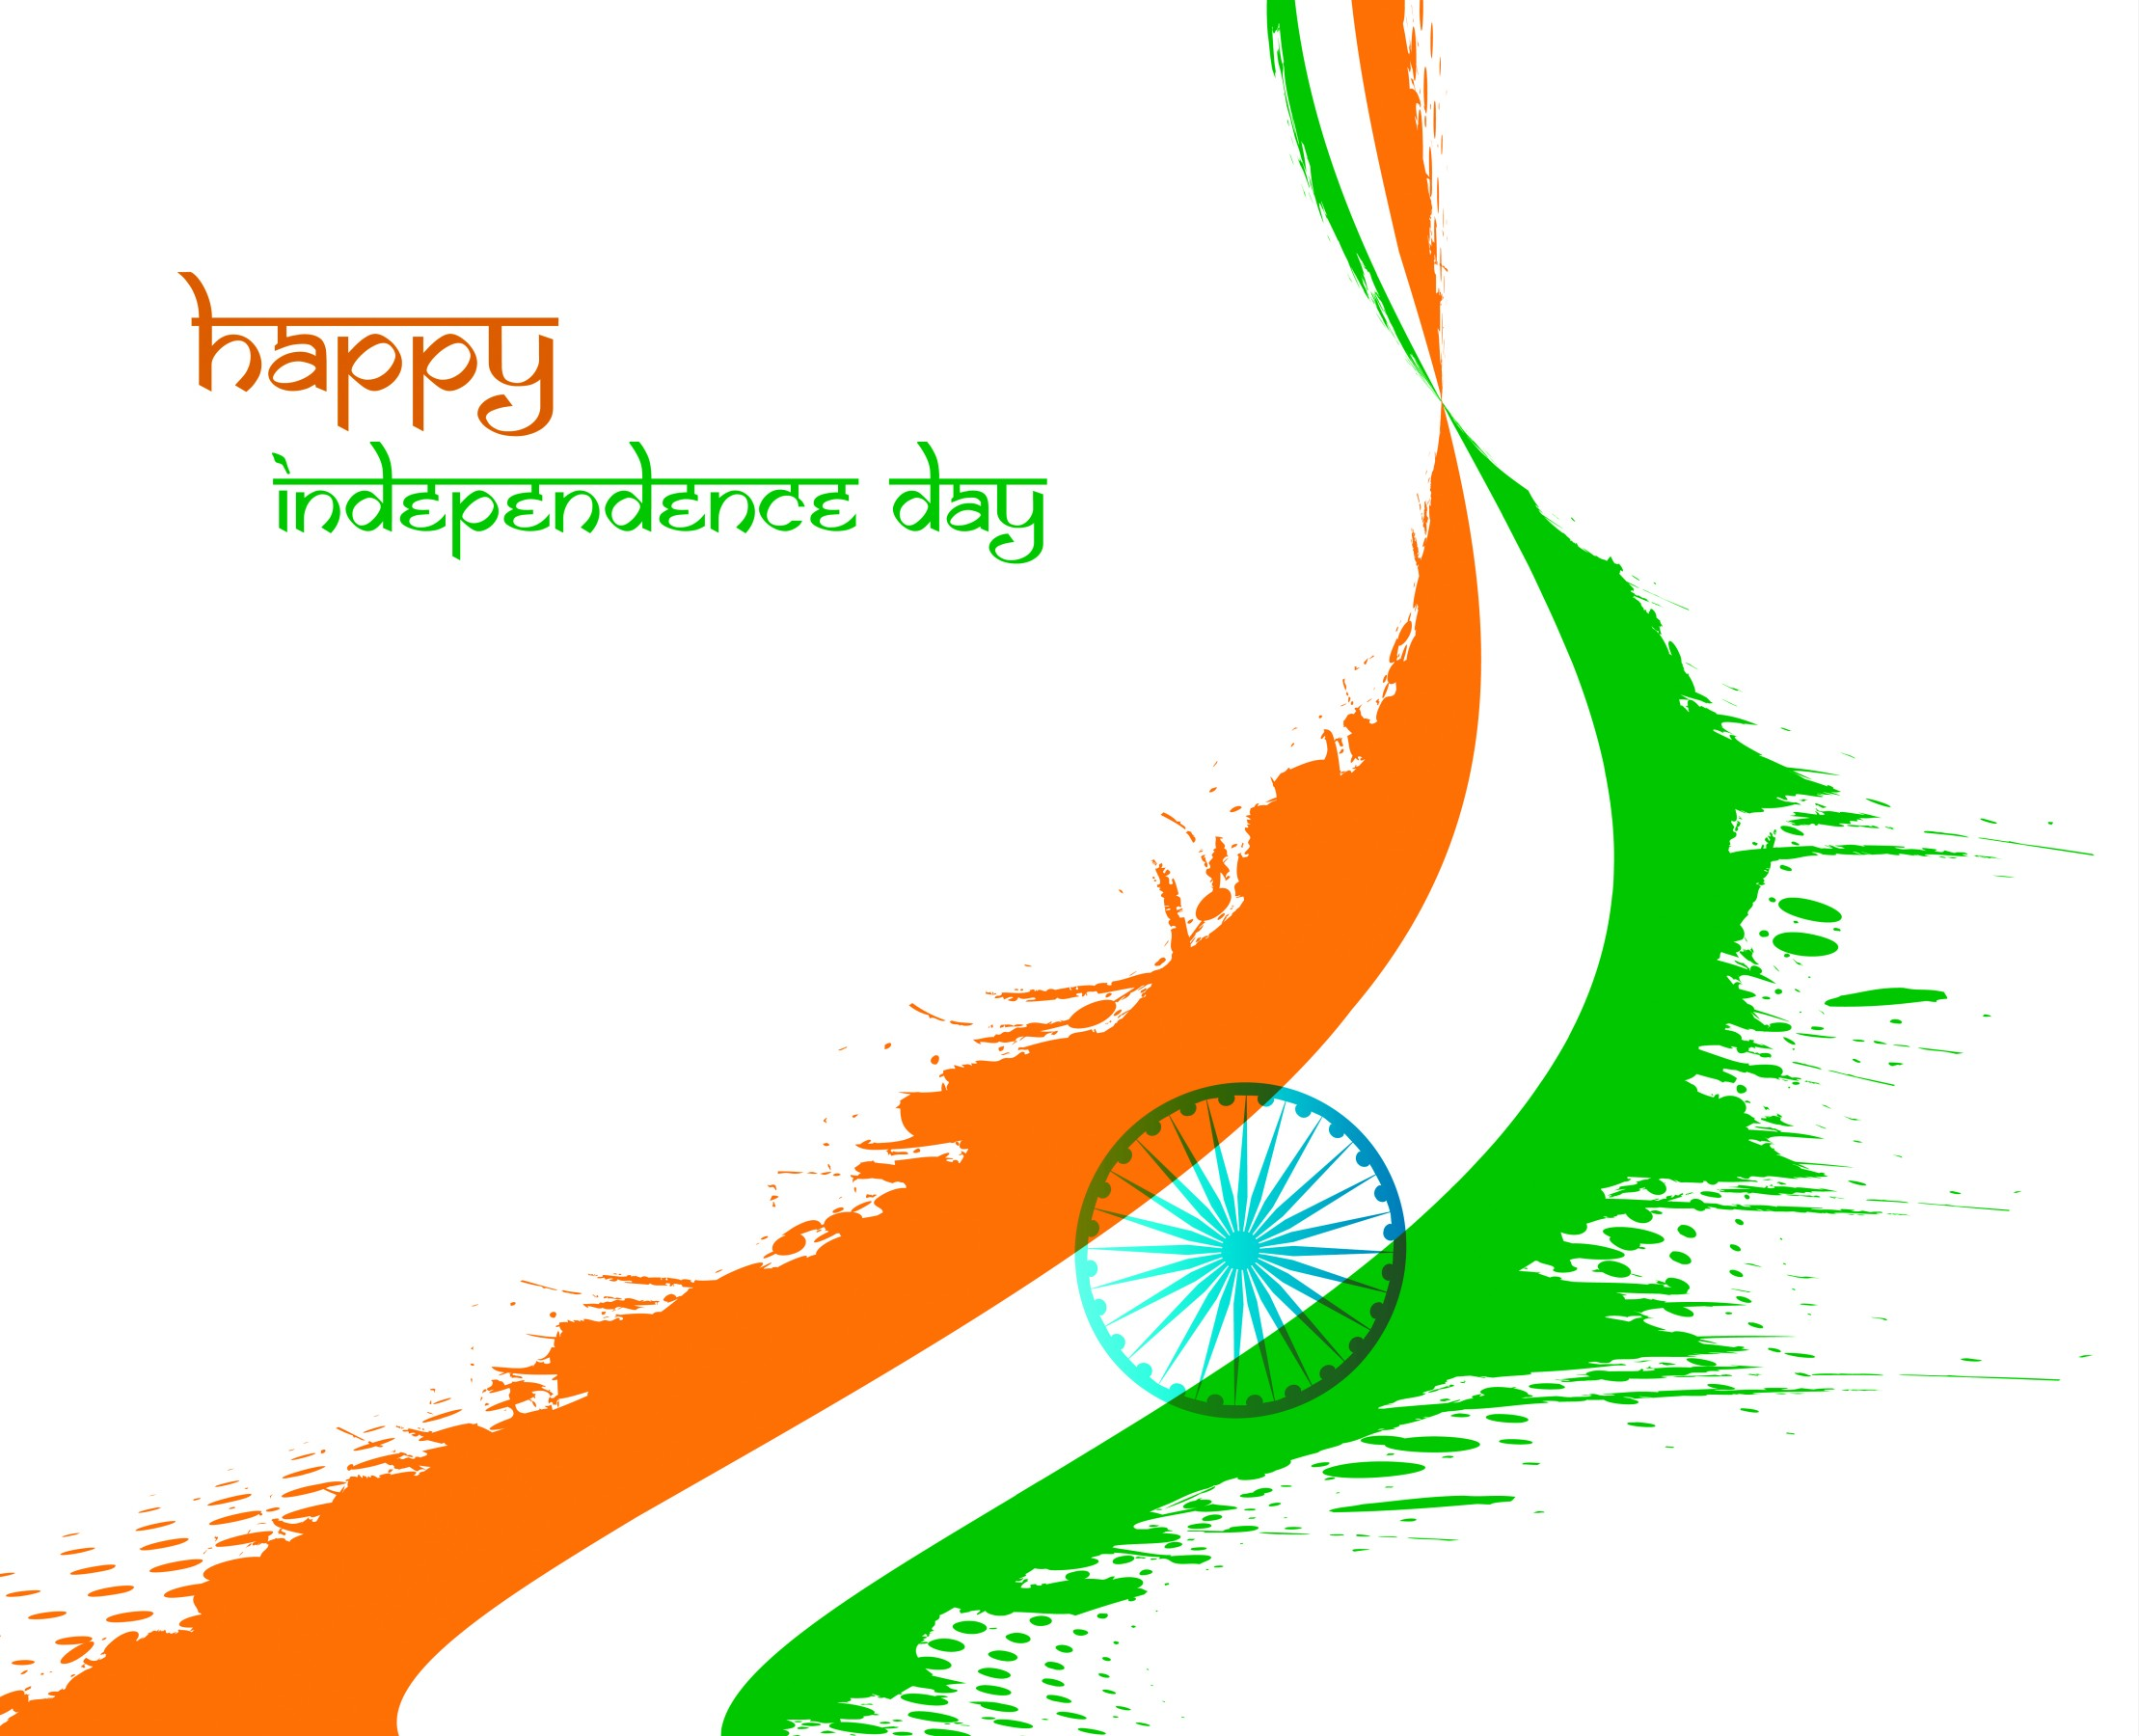 essay on after independence school essay on n independence  words essay on independence day of independence day